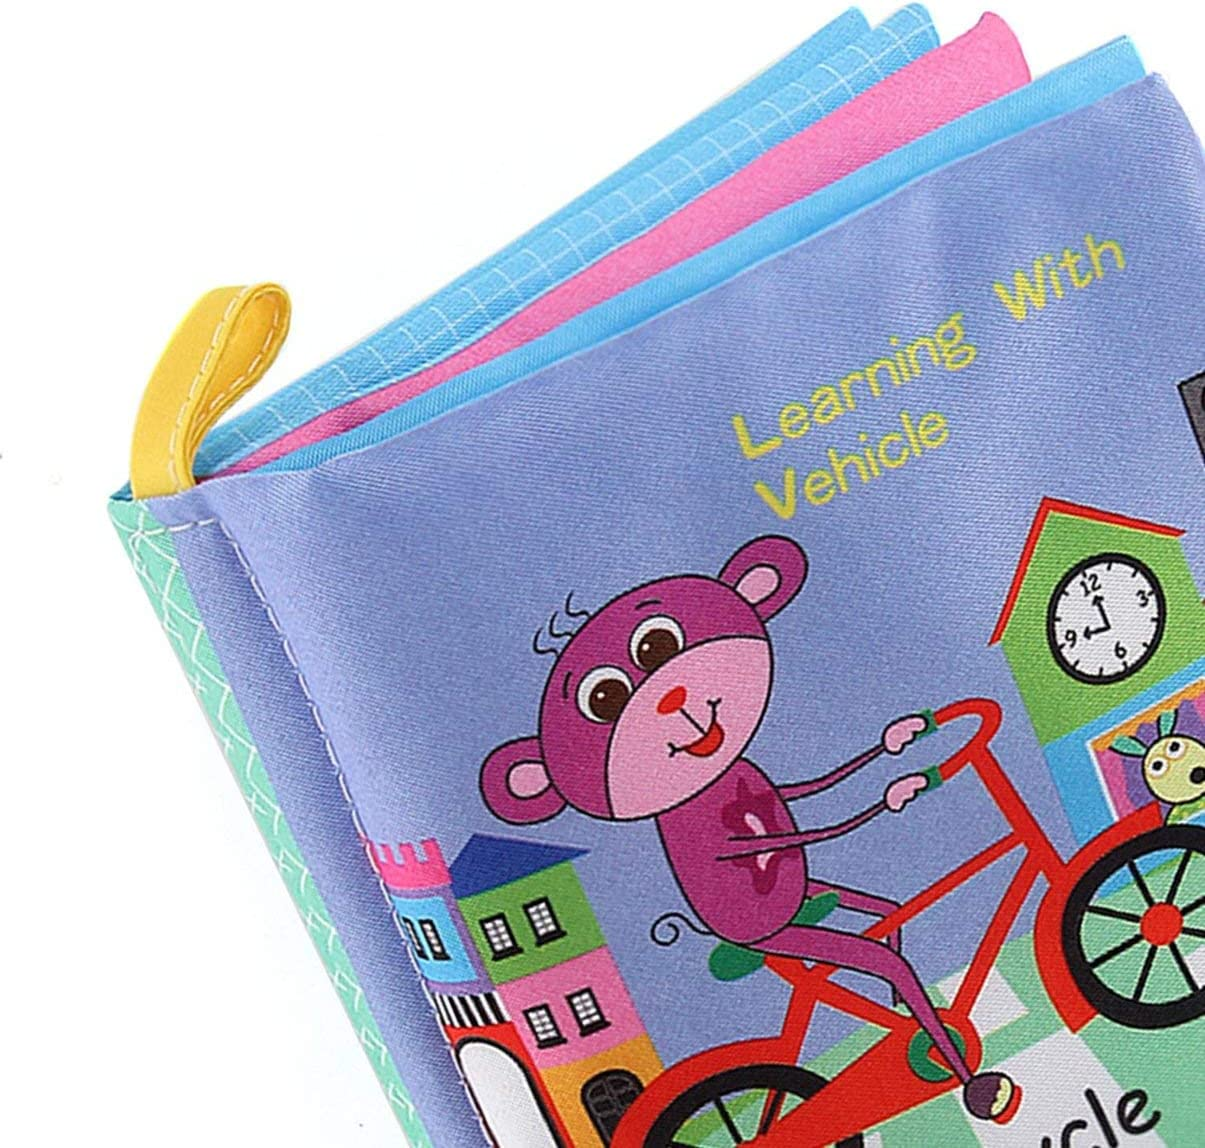 fgjhfghfjghj Baby Shower Bath English Cartoon Animal Cloth Book Early Educational Games Toy Christmas Birthday Gifts for Kids Children